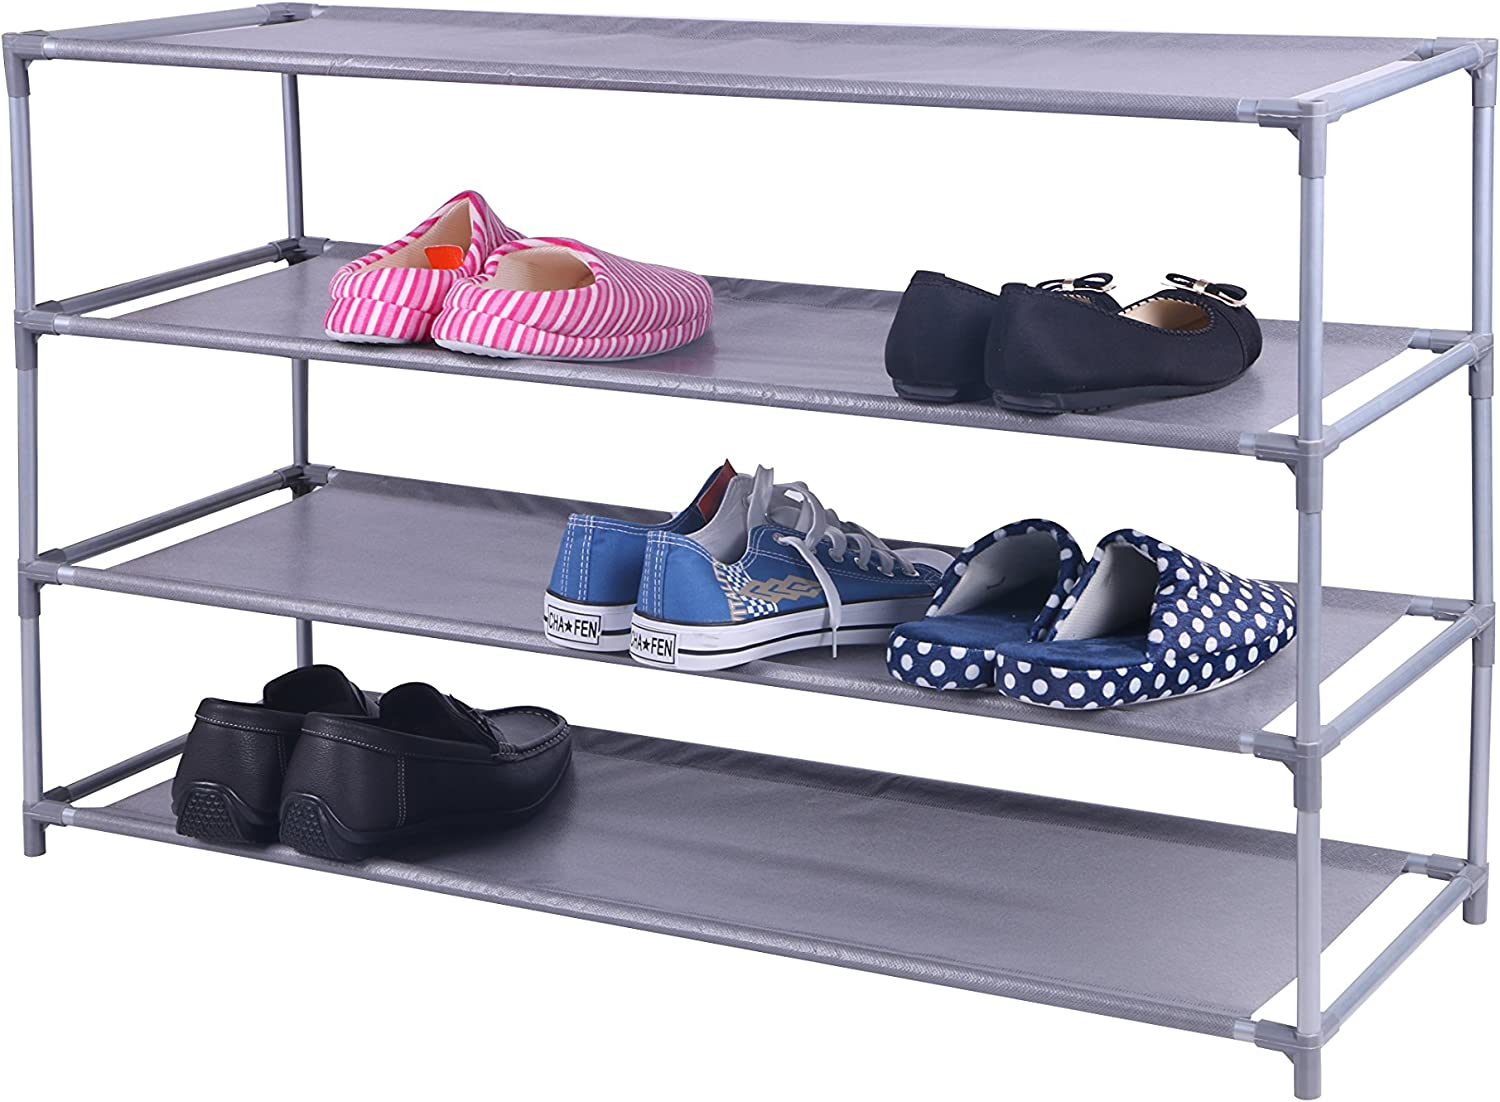 Home Baltimore Mall Basics 20 Pair Non-Woven Wide Shoe Max 62% OFF Rack 4-Tier